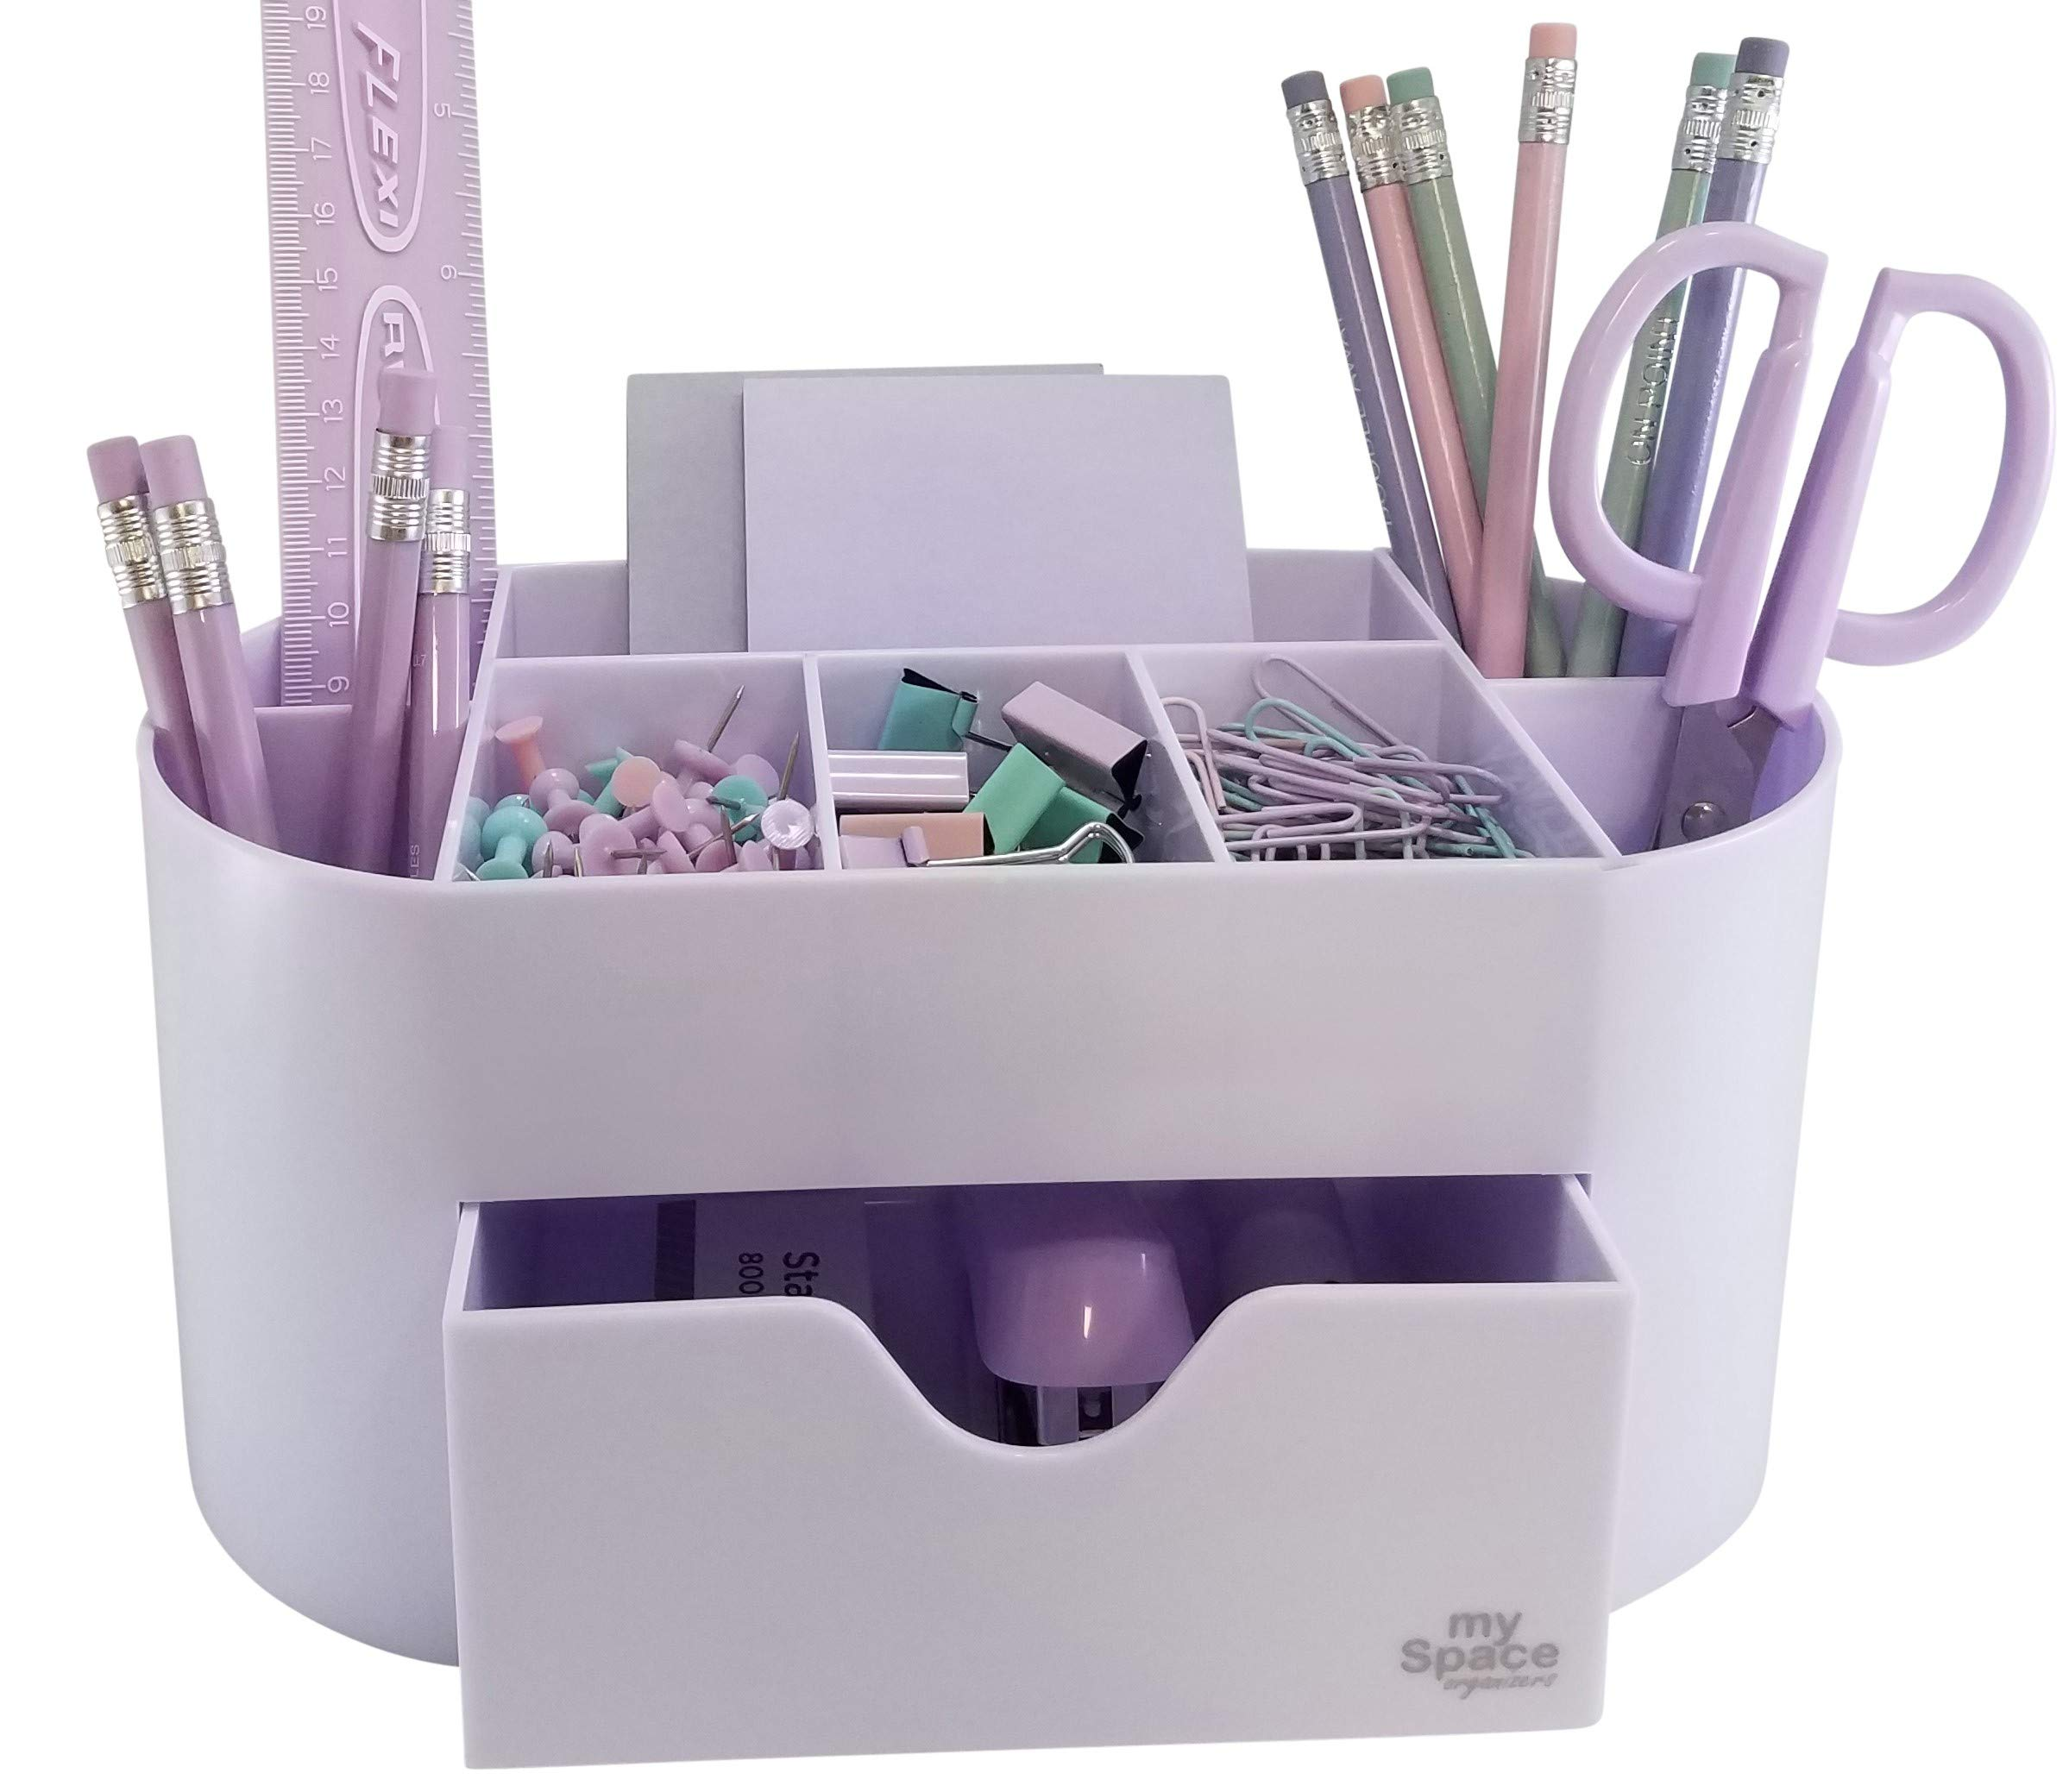 White Lavender Acrylic Desk Organizer for Office Supplies and Desk Accessories Pen Holder Office Organization Desktop Organizer for Room College Dorm Home School, Light Purple by My Space Organizers